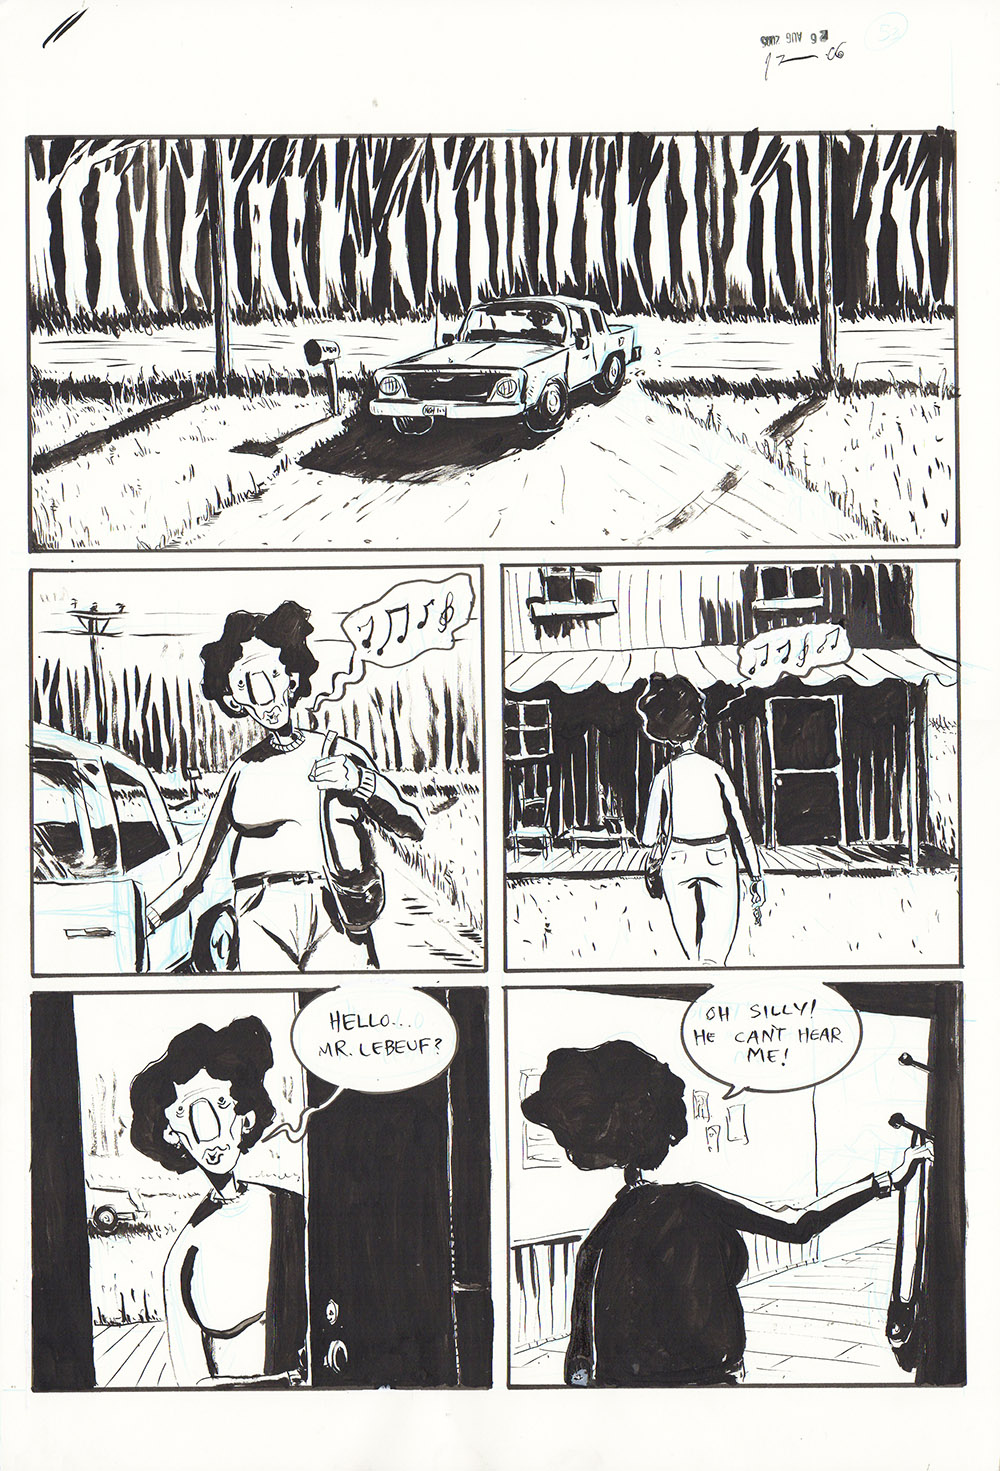 Essex County Book 2: Ghost Stories - page 167